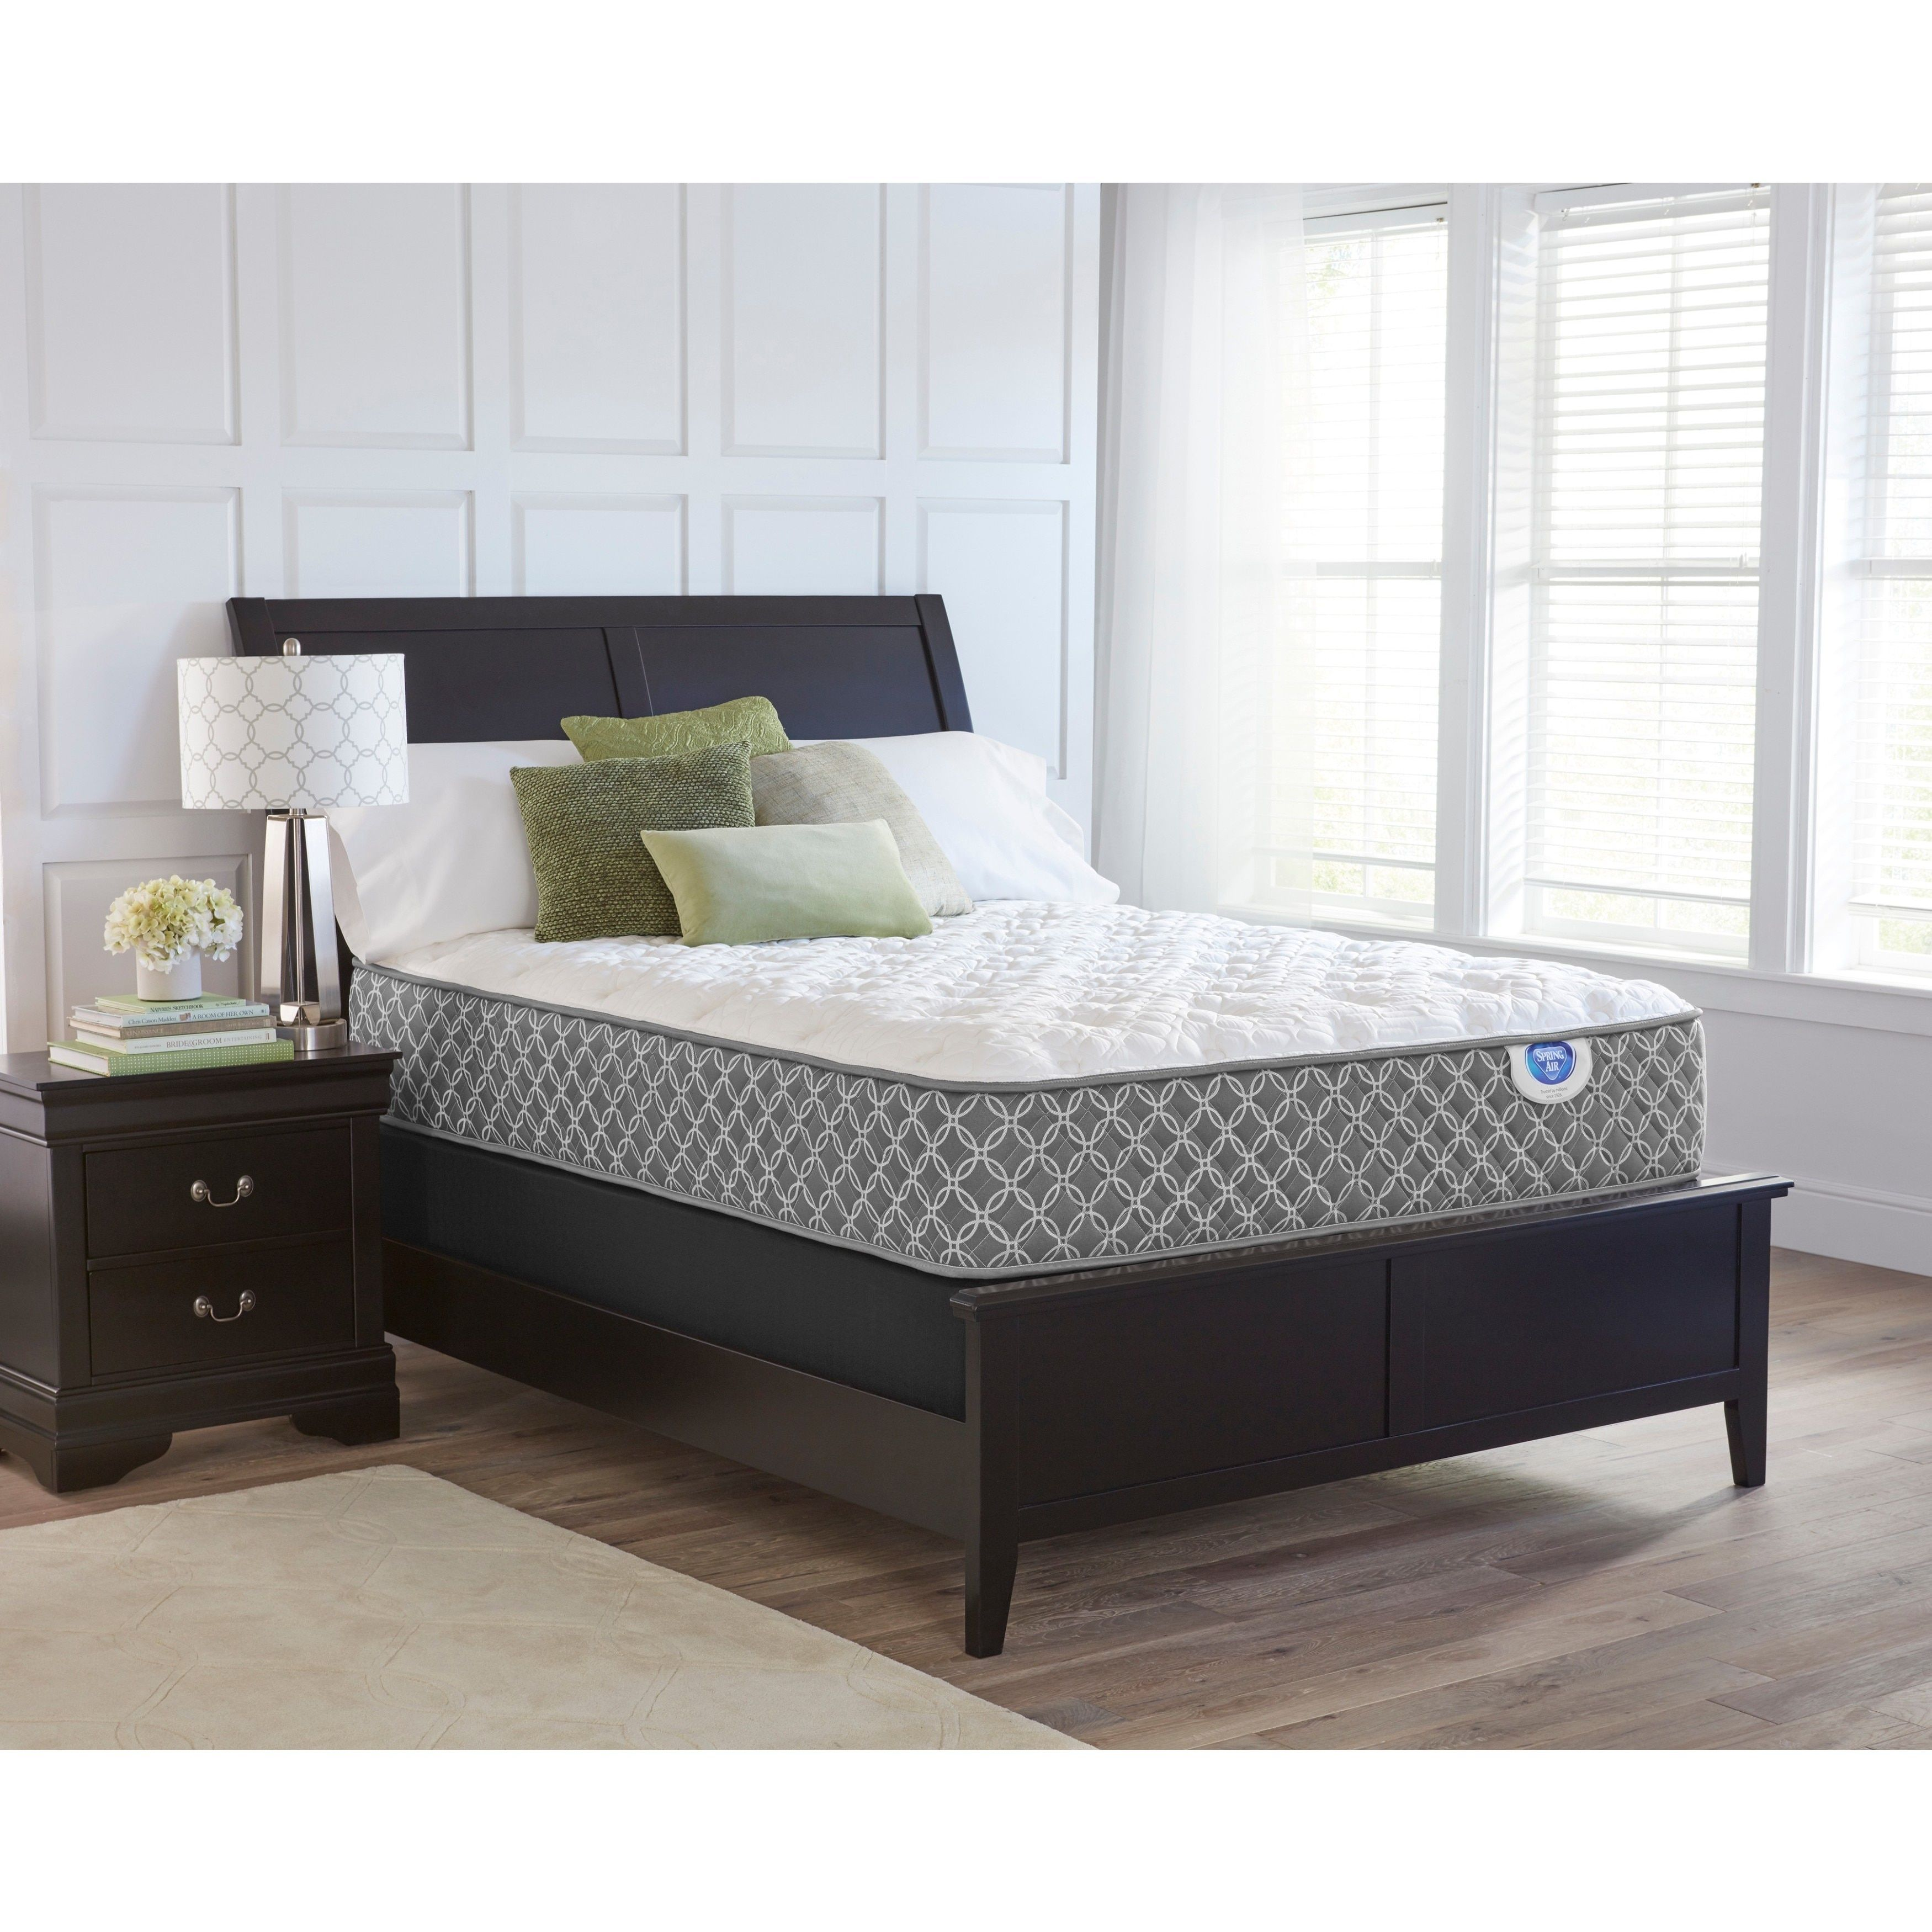 width koil ext luxury mattresses height milan forty king world products winks beds qb mattress